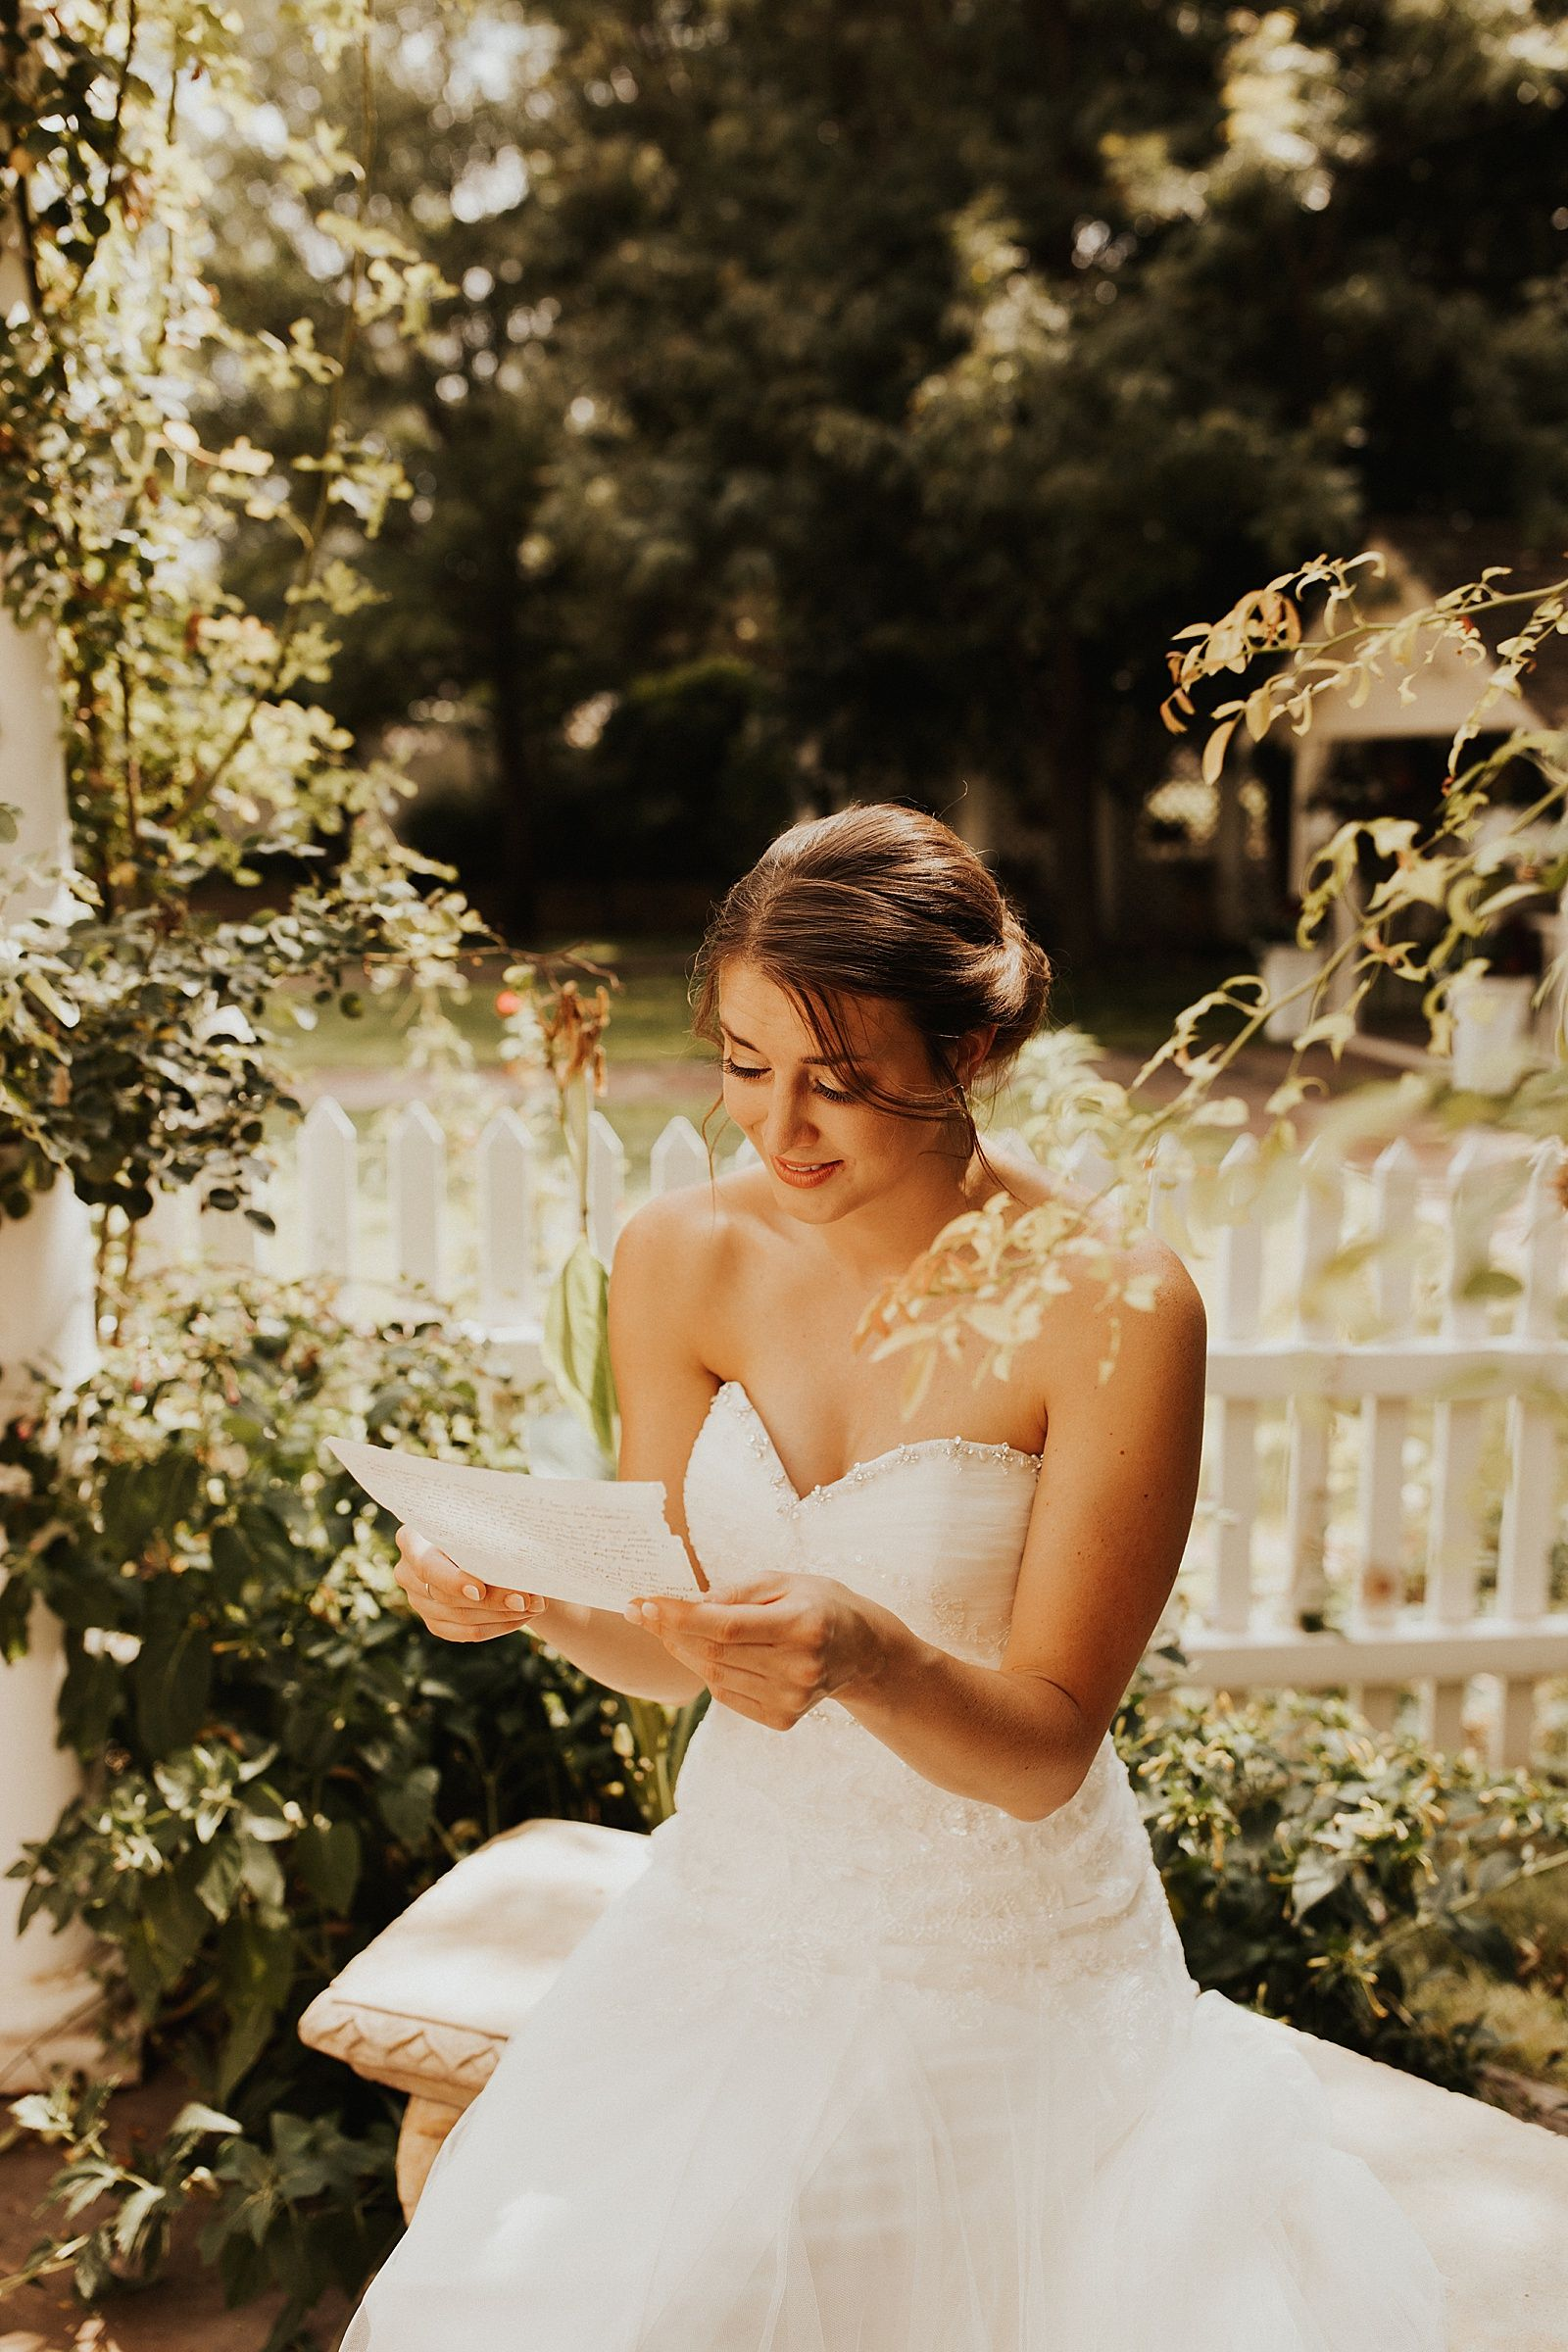 Country Home Weddings in Canyon, TX Austin wedding